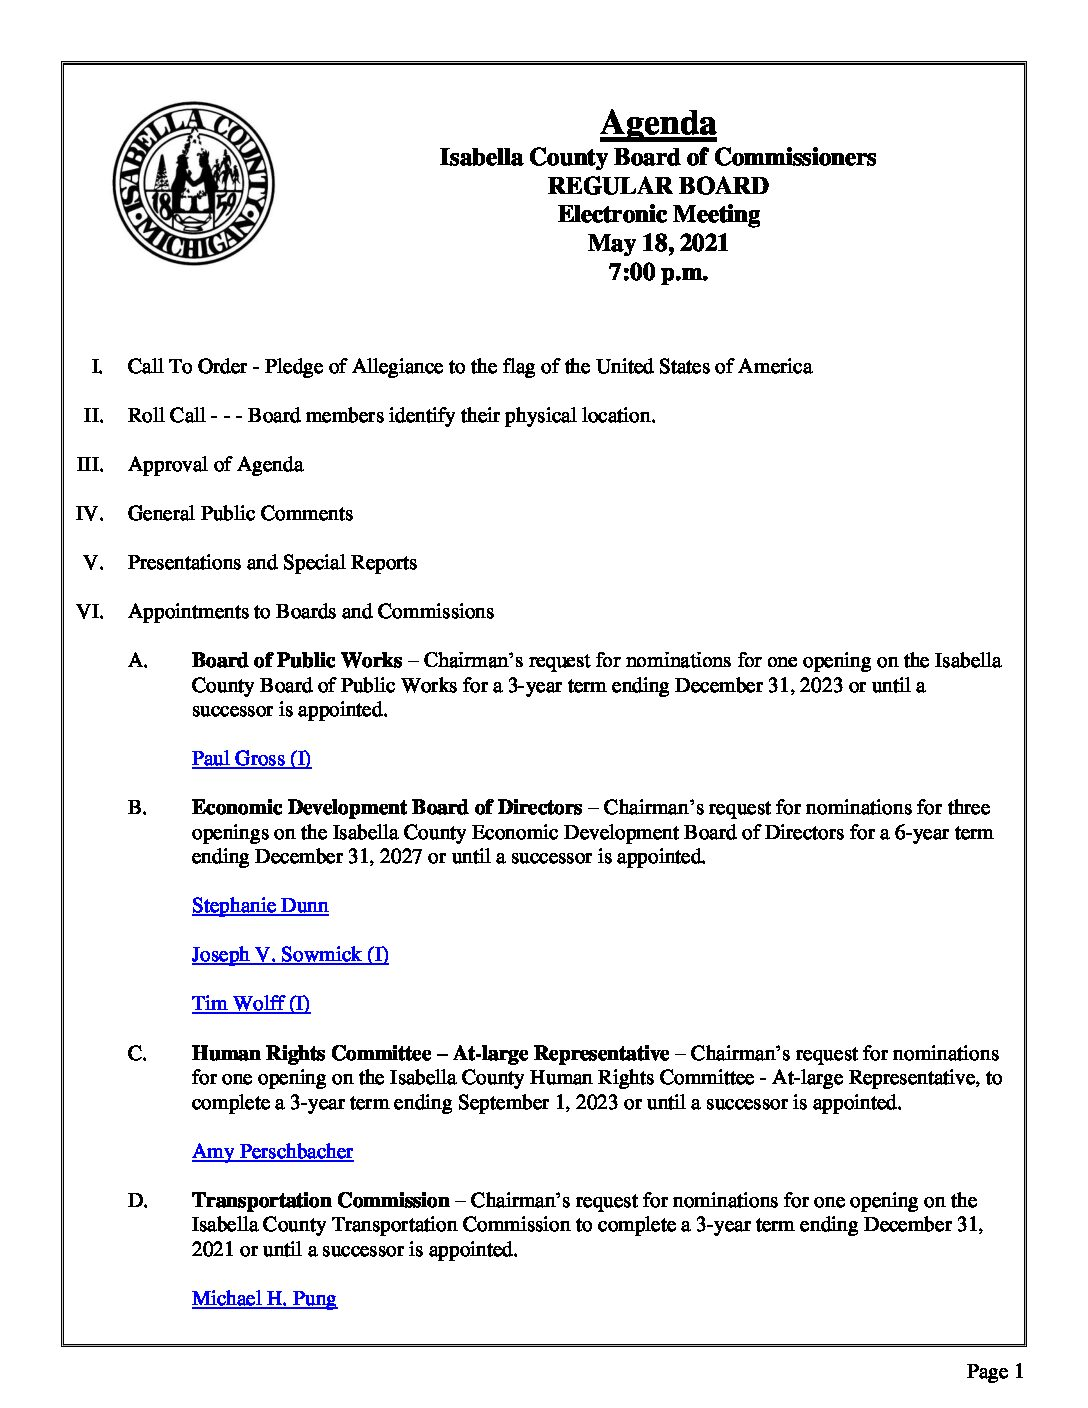 preview image of first page May 18, 2021 Agenda